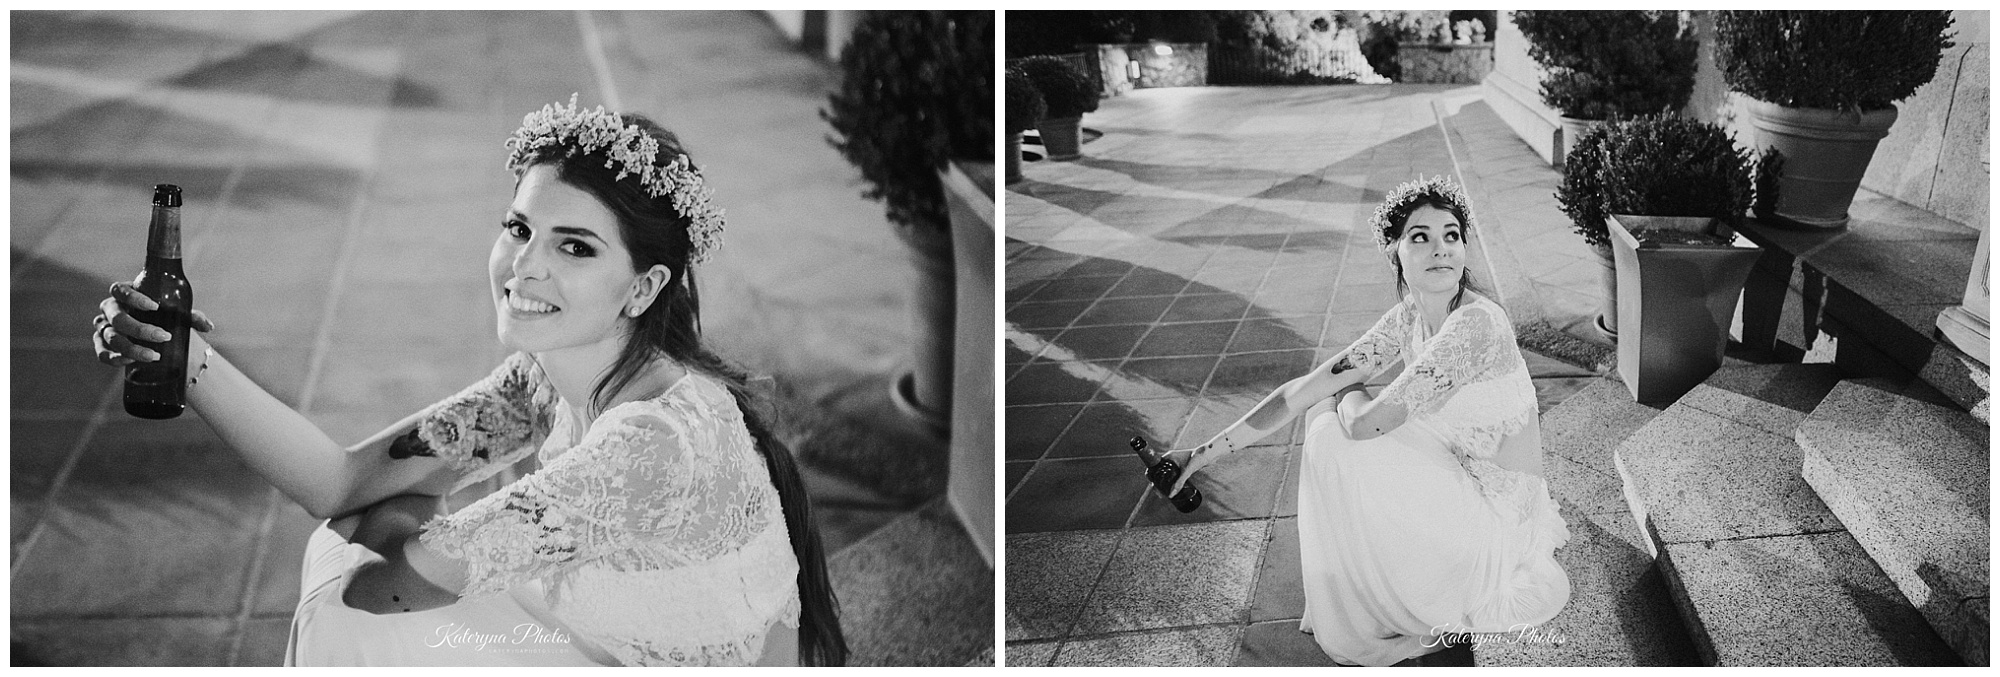 Kateryna-photos-wedding-photographer-in-barcelona-boda--bell-reco-catalunya_ceremony-in-a palace_0176.jpg